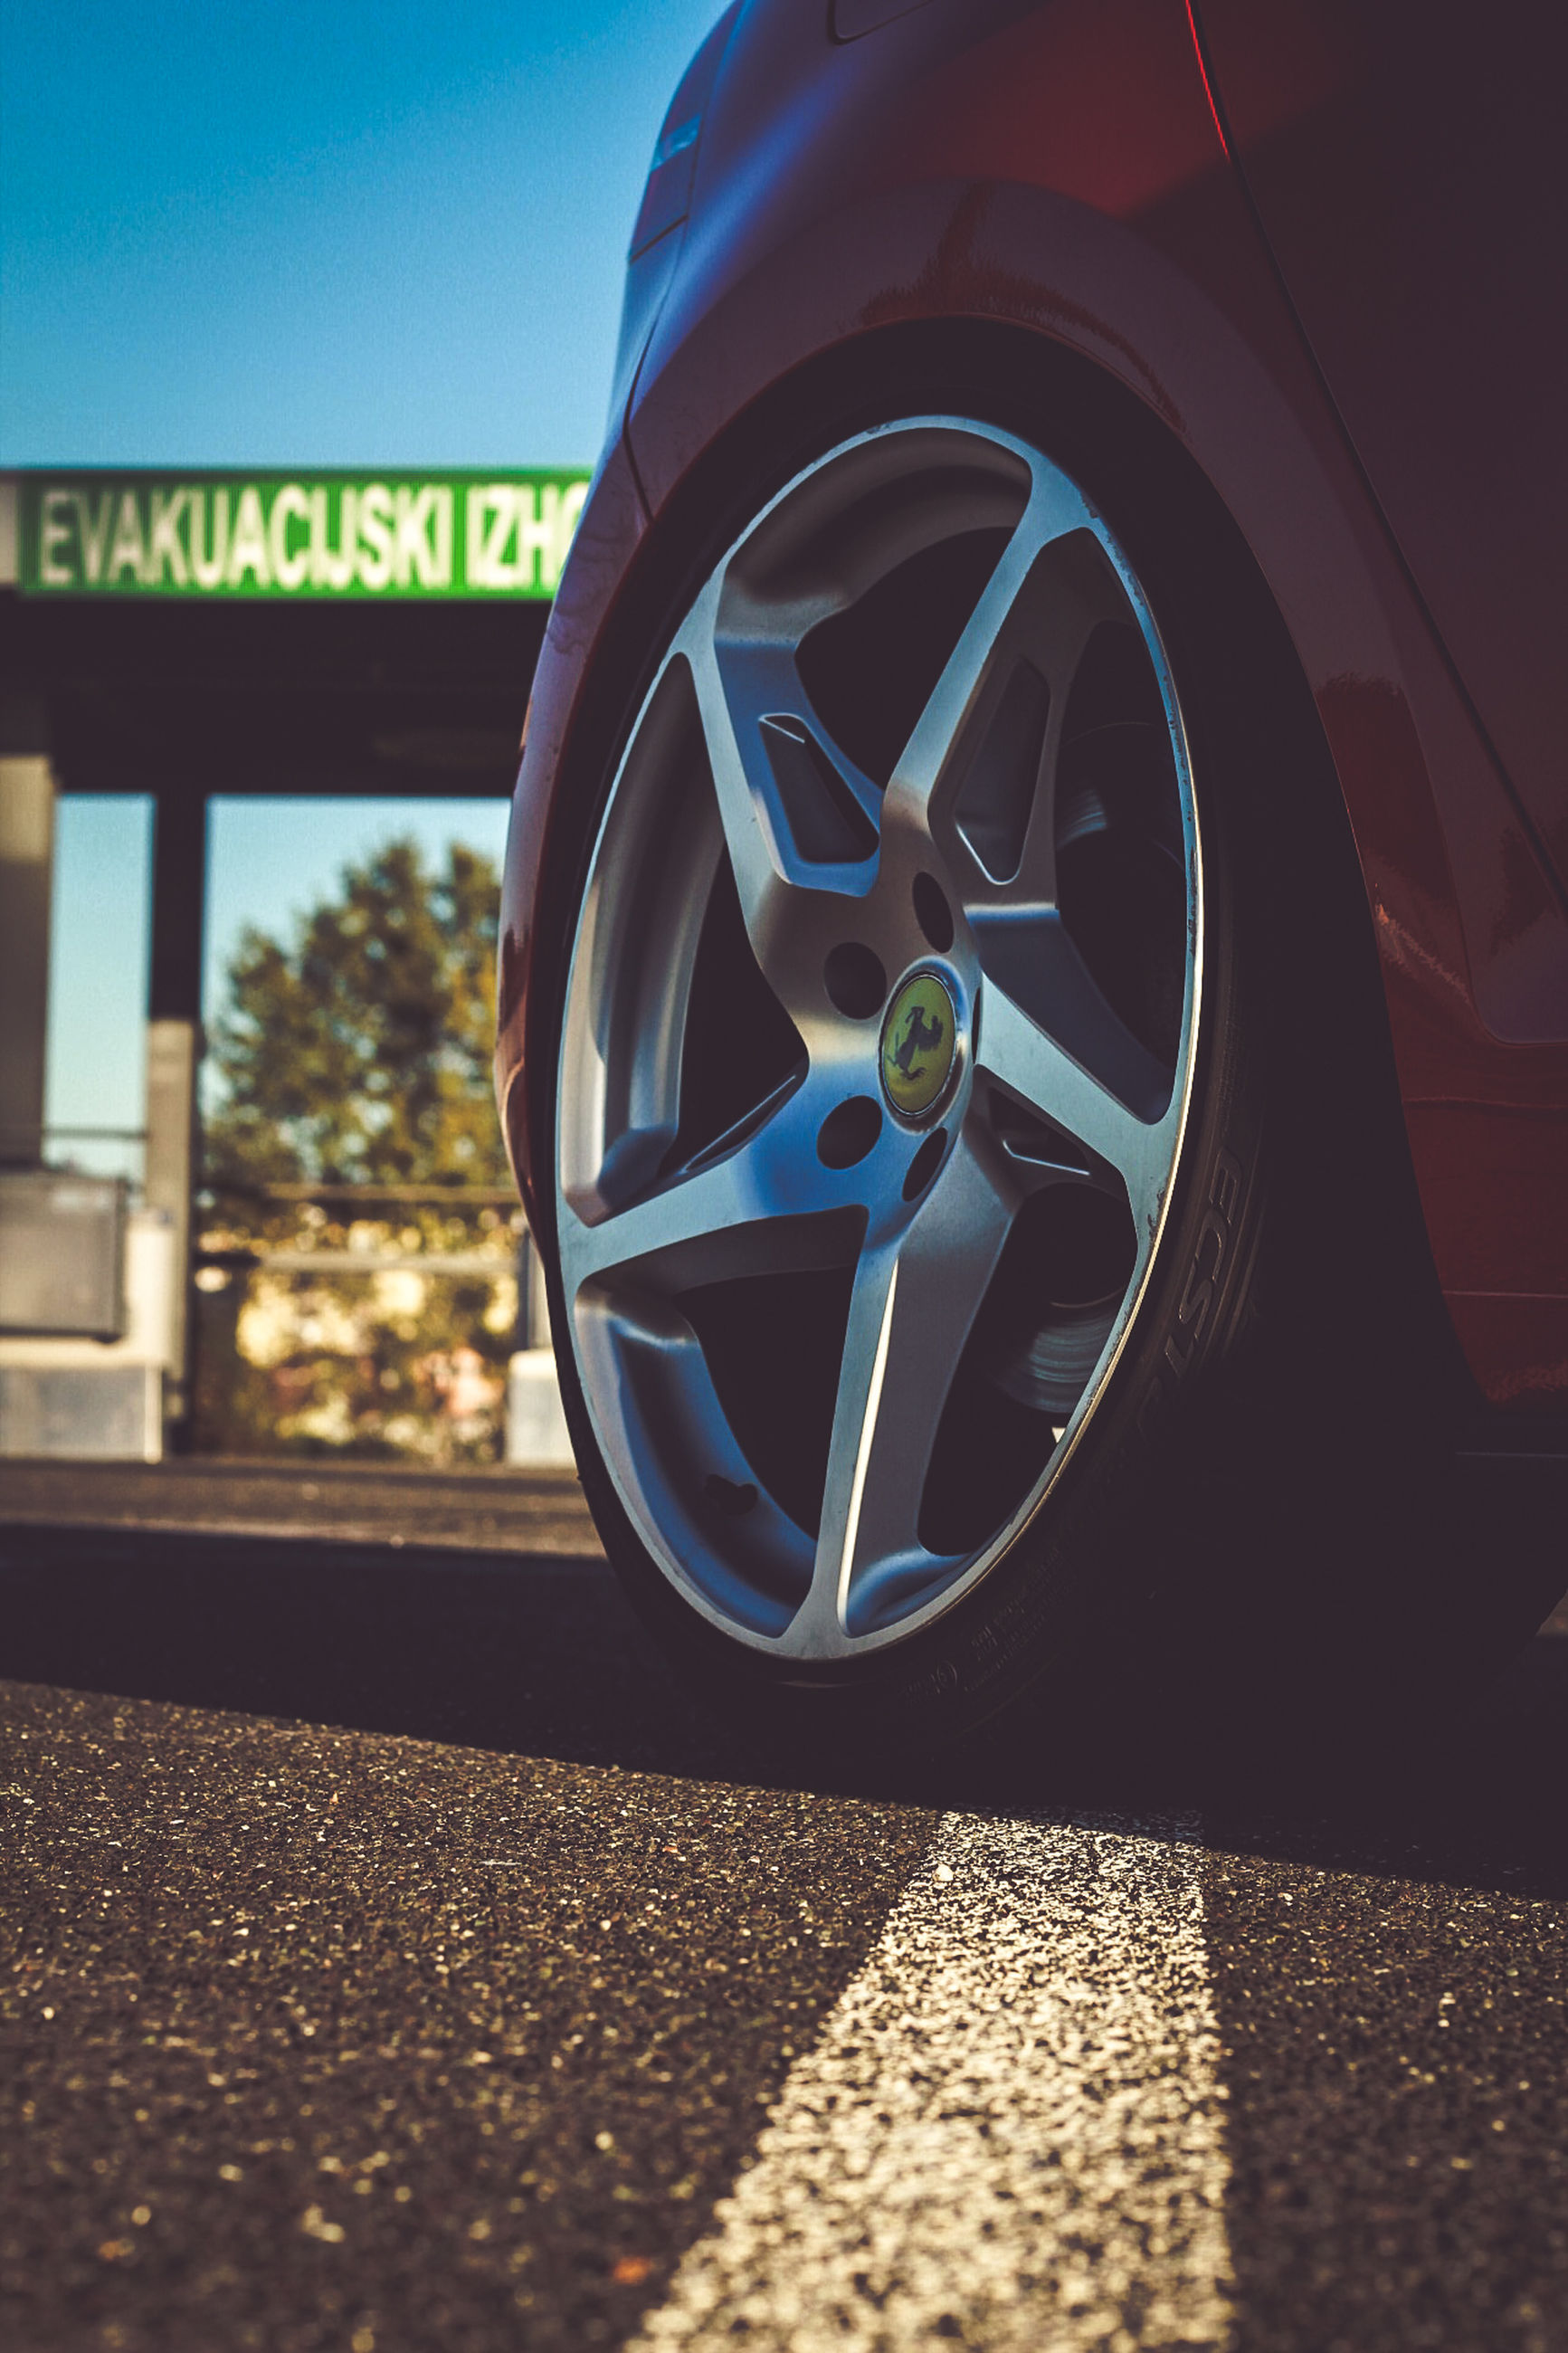 transportation, mode of transportation, road, car, sunlight, shadow, land vehicle, no people, motor vehicle, day, nature, reflection, wheel, close-up, outdoors, sign, city, shape, symbol, geometric shape, tire, silver colored